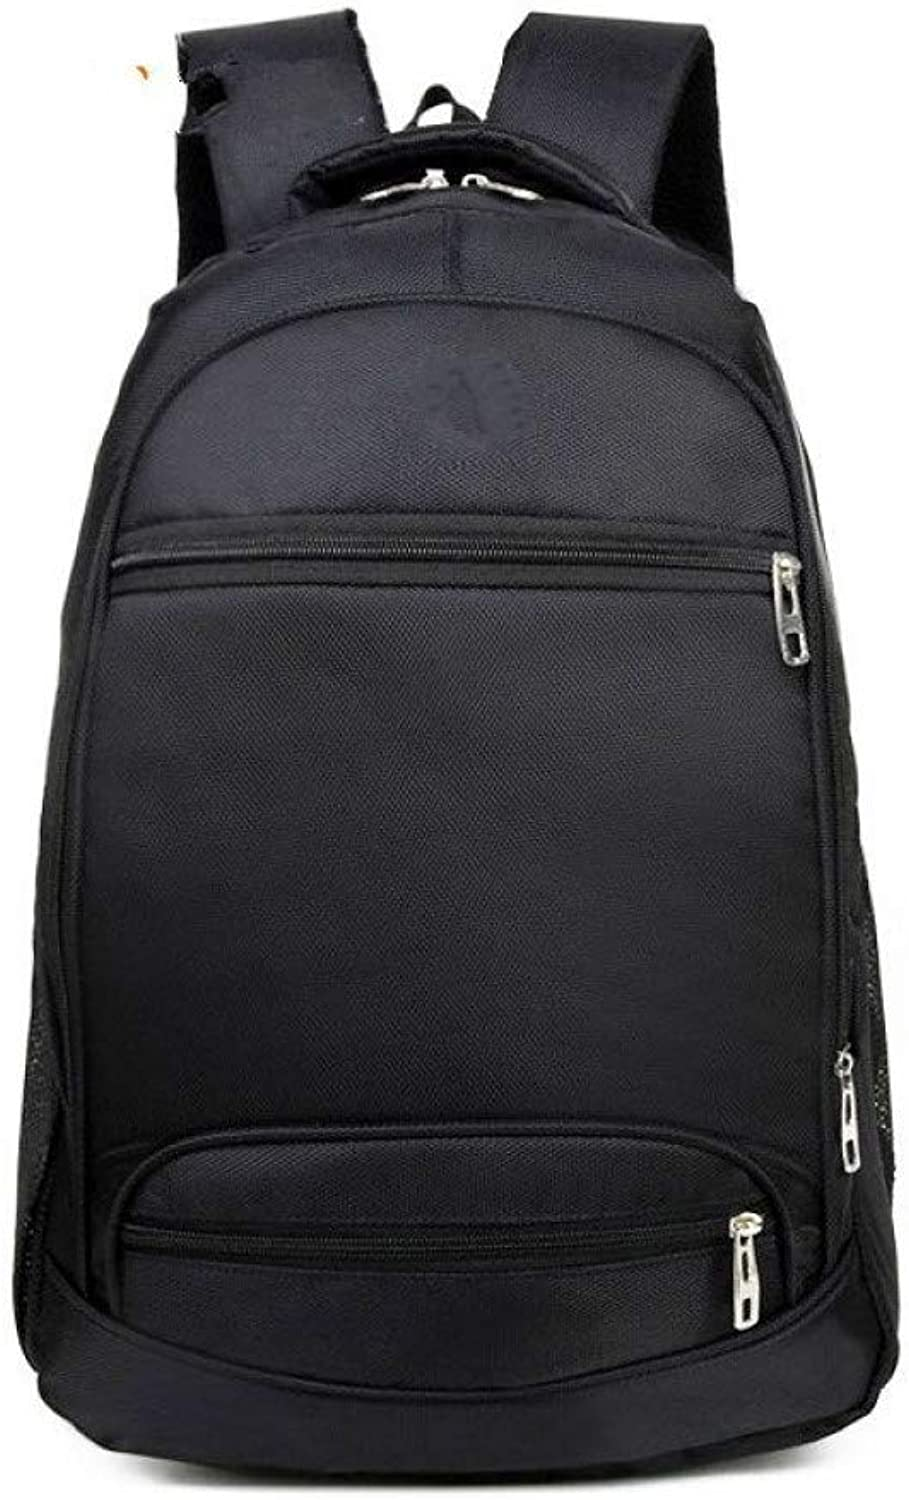 HUYANNABAO Black Business Backpack Male Swiss Military 15.6  Computer Bag Men's Travel Bags Male Large Capacity Bag